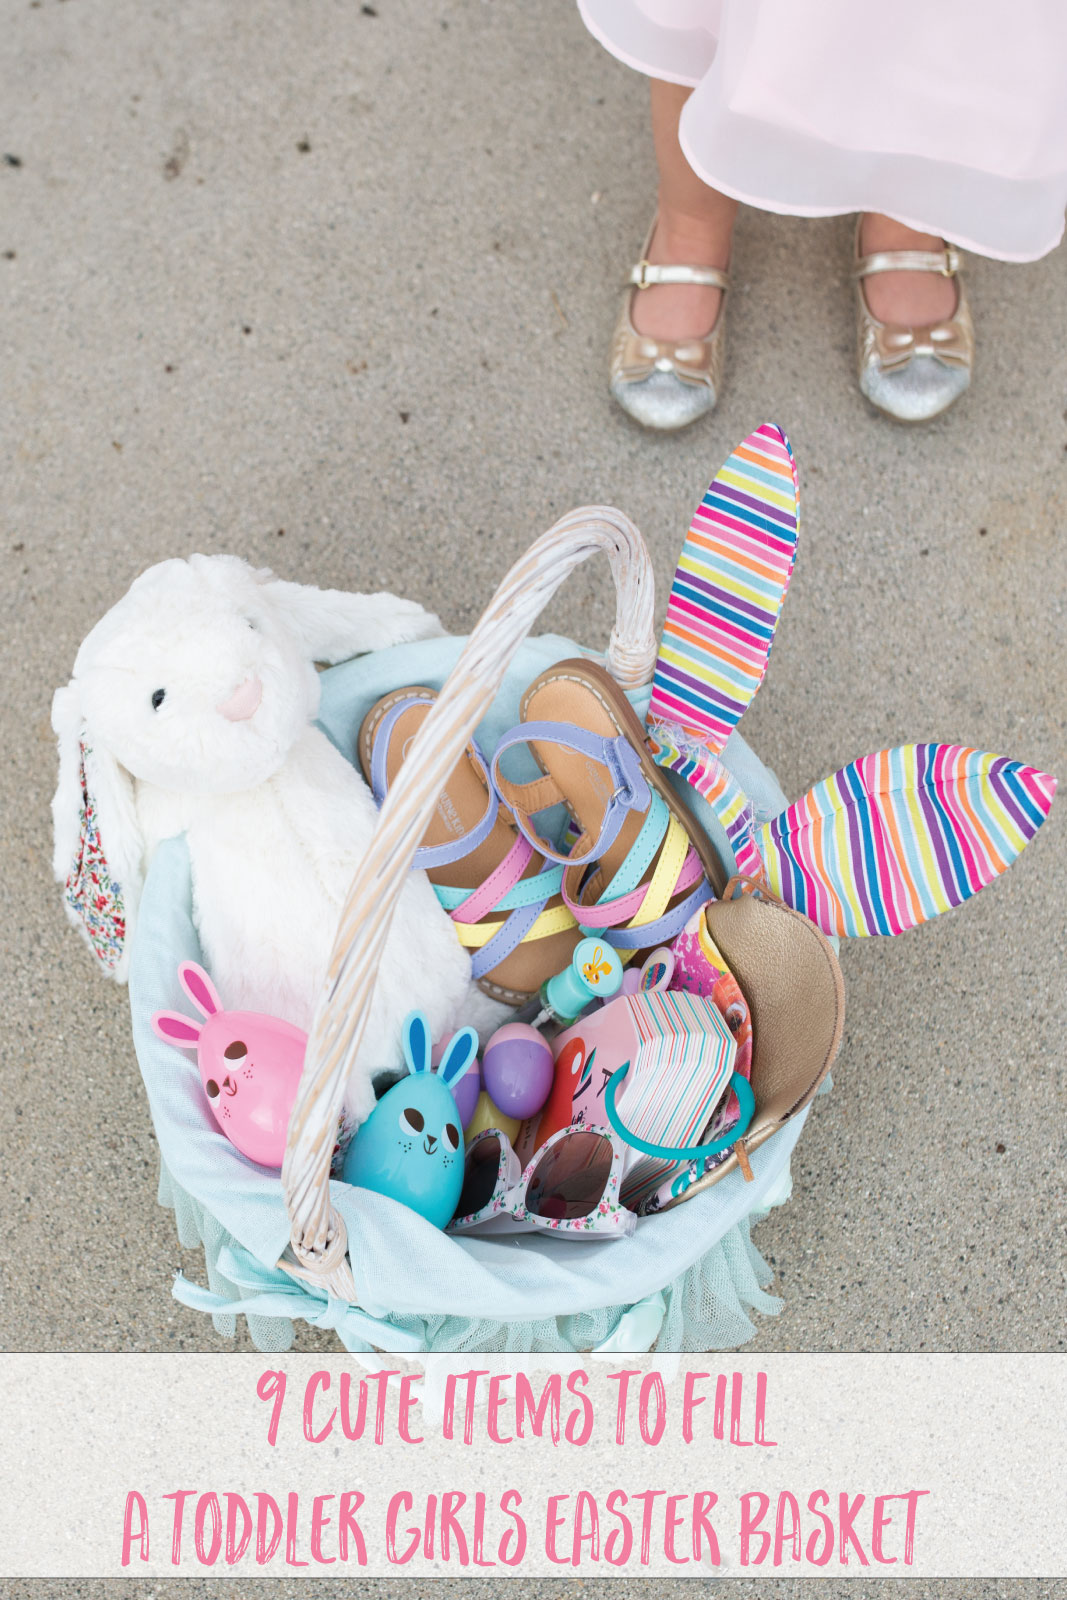 9 Cute Items To Fill Your Toddler Girls Easter Basket by lifestyle blogger Sandy A La Mode